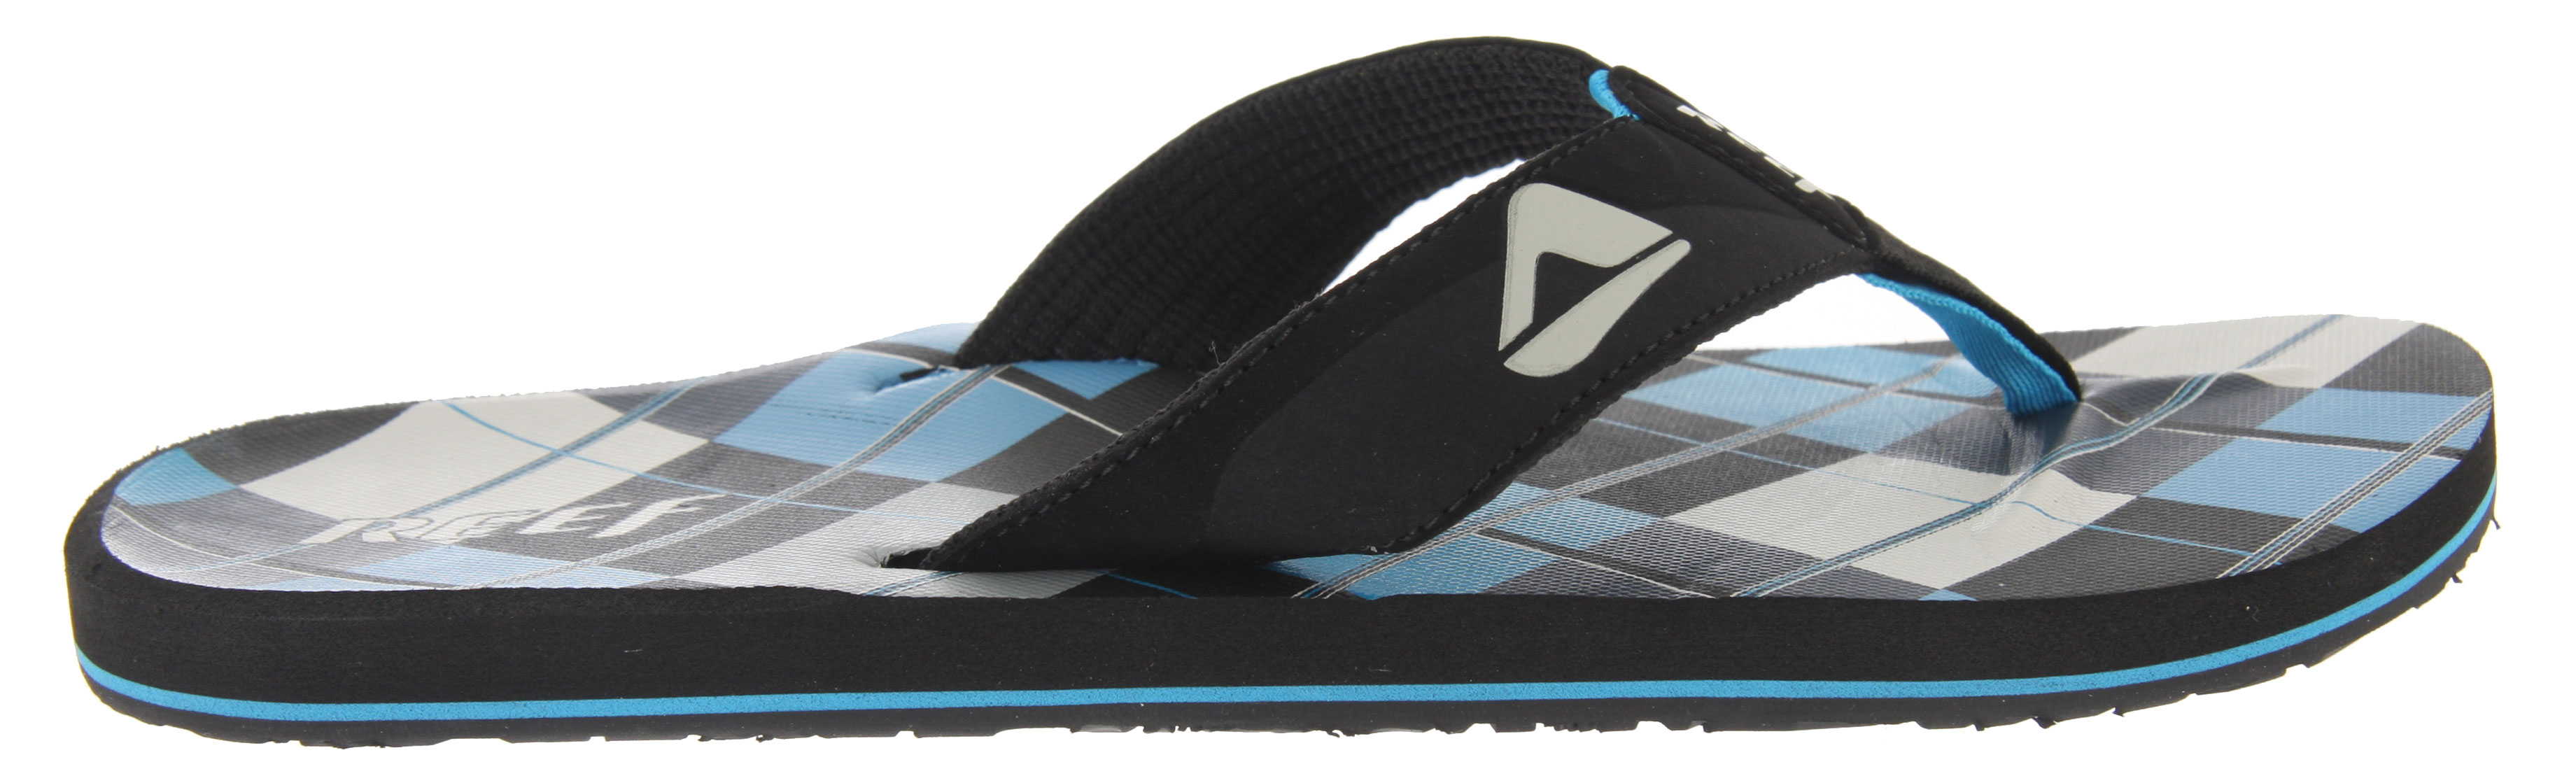 Surf Reef HT Prints Sandals are made entirely of materials that don't mind getting wet, for wearers who like their fun mixed with H2O. Another great sandal from the massive line of Reef sandals, this thong style starts with man-made nubuck upper lined with polyester weave. Construction continues with an ergonomically correct arch support in the contoured midsole, ending with a rubber reef outer sole that delivers superior traction. Depend on Reef footwear for beach-friendly fashion and design inspired by the surf from a company with nearly three decades of industry experience and excellence.Key Features of the Reef HT Prints Sandals: Soft, comfortable, water friendly synthetic nubuck upper Soft reef polyester woven lining Contoured Eva footbed with anatomical arch support Grippy molded reef rubber outsole - $16.95